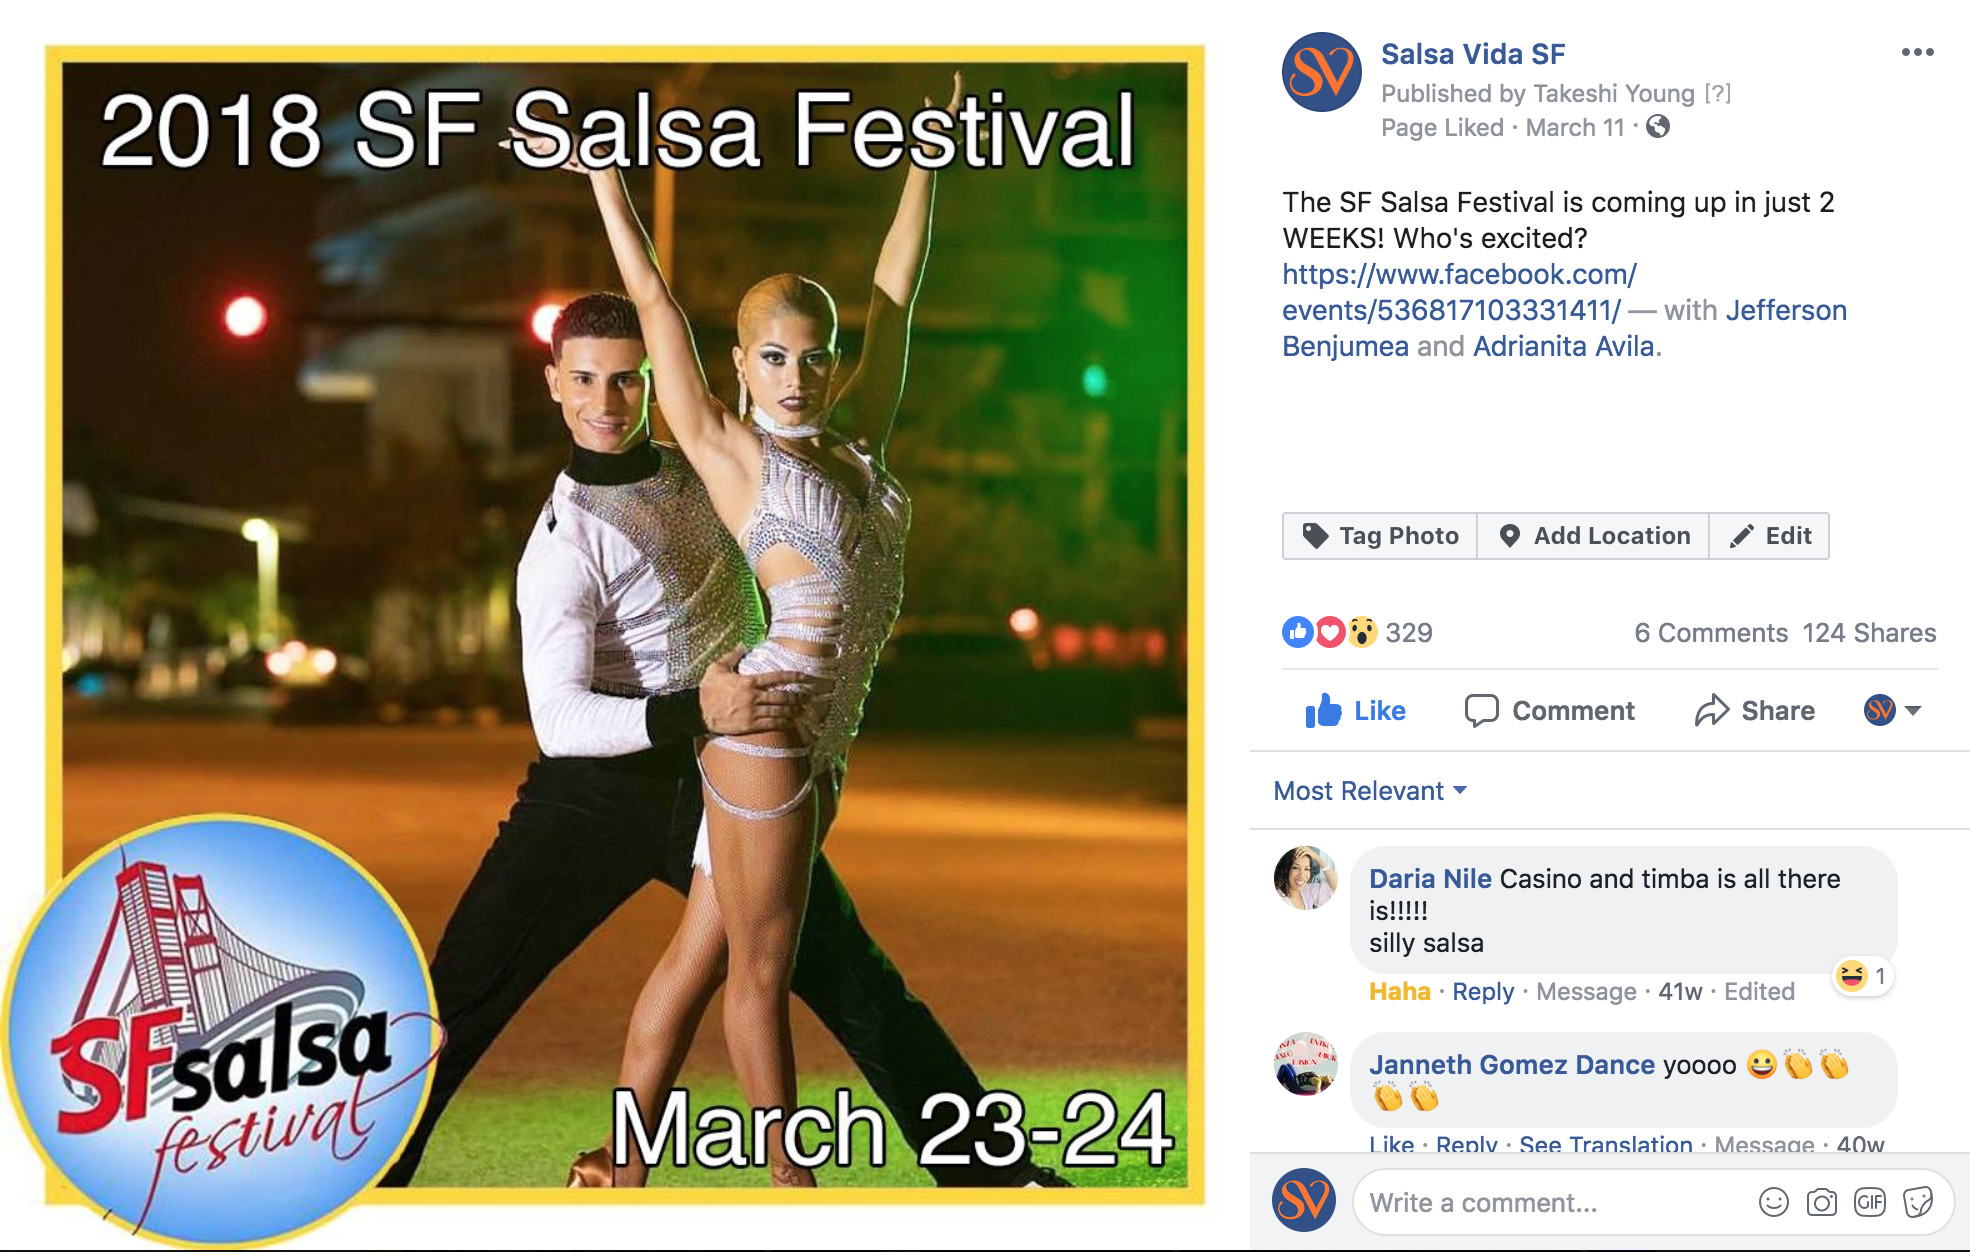 Salsa Vida SF Facebook Promotion